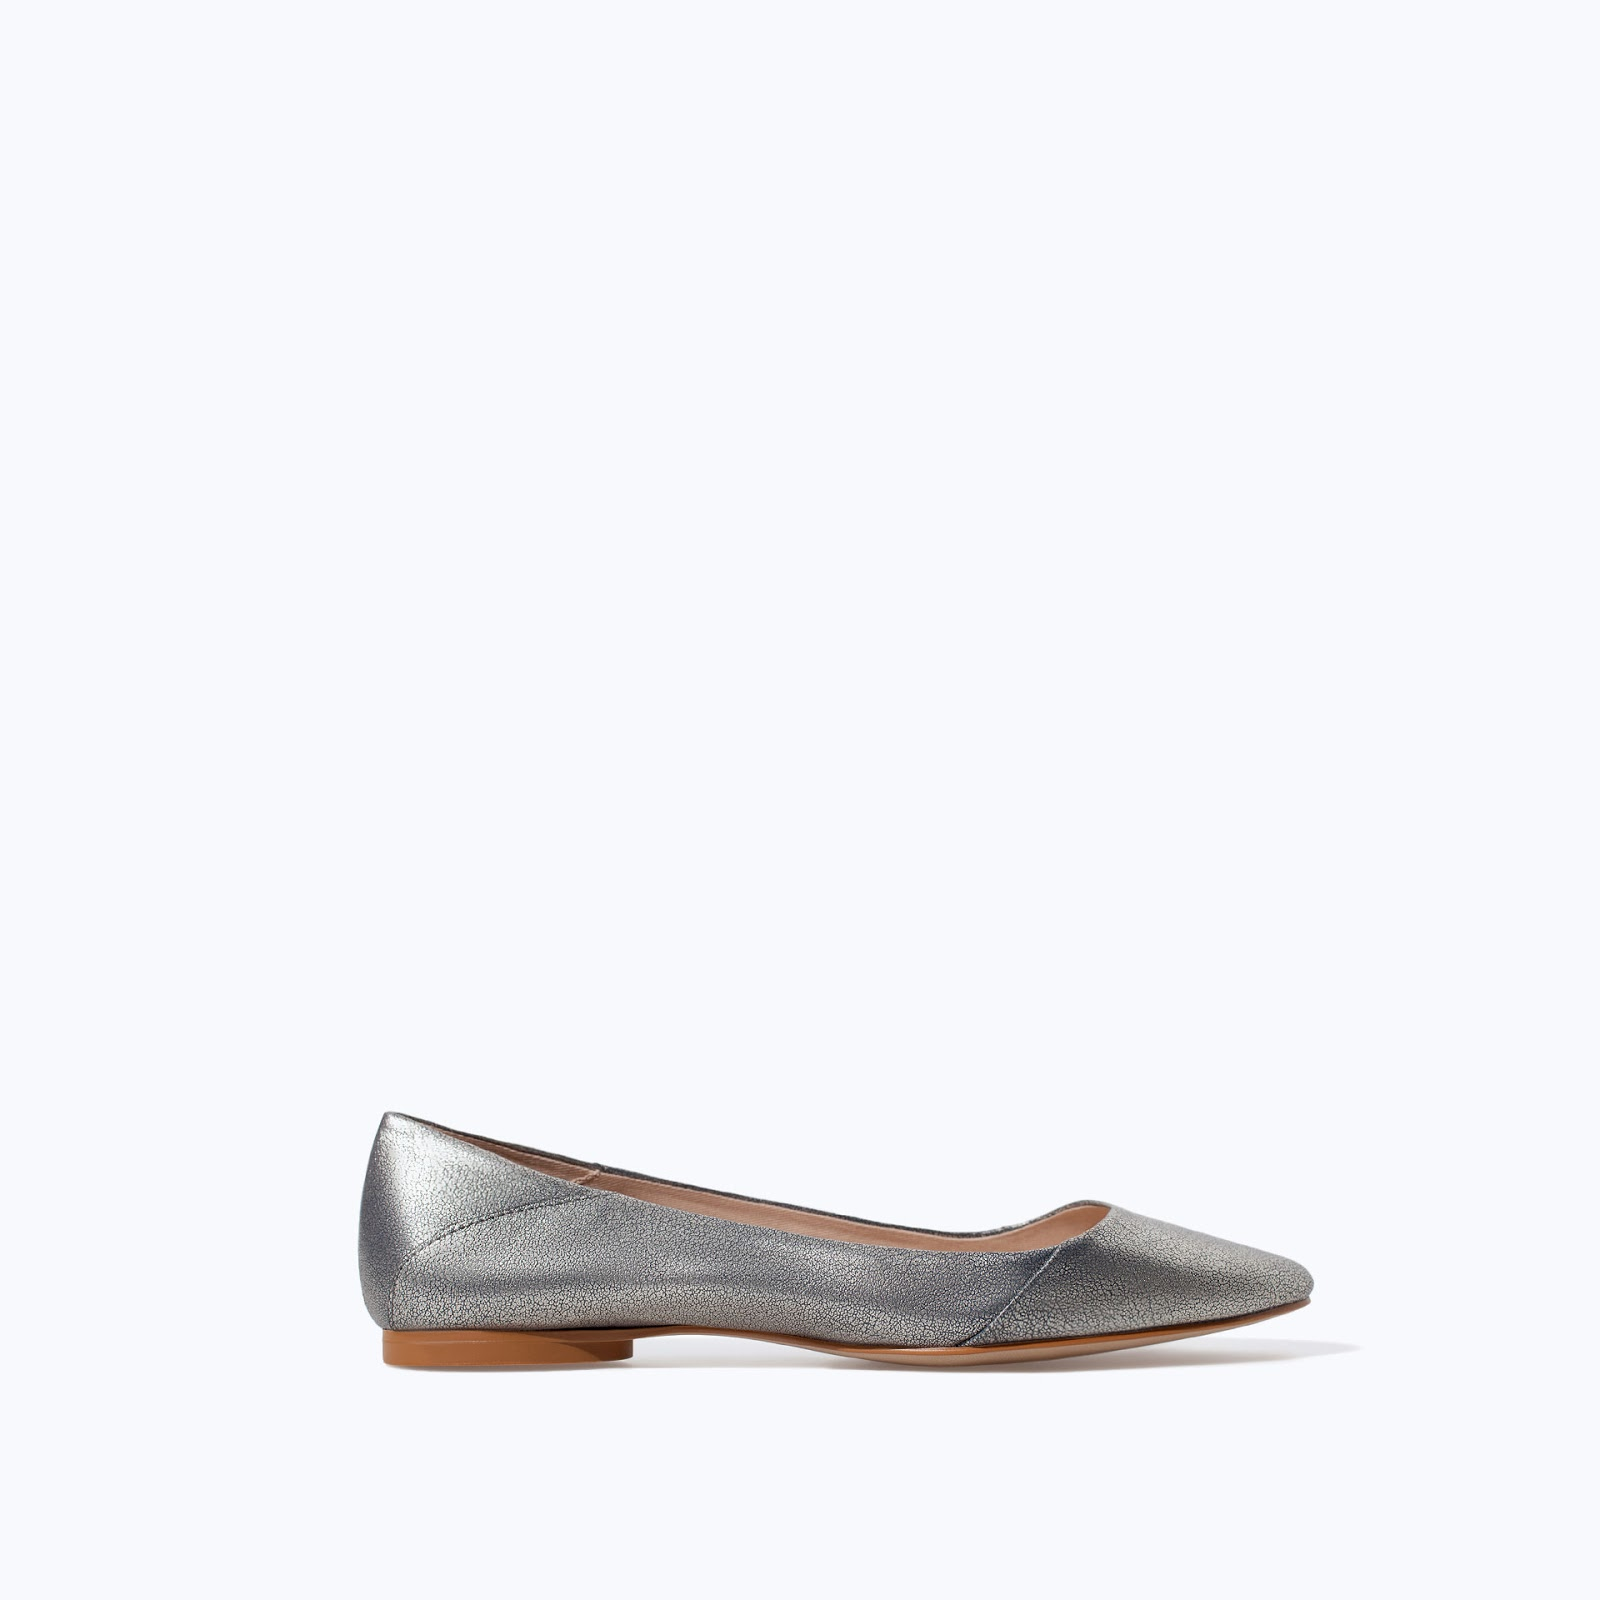 zara silver shoes